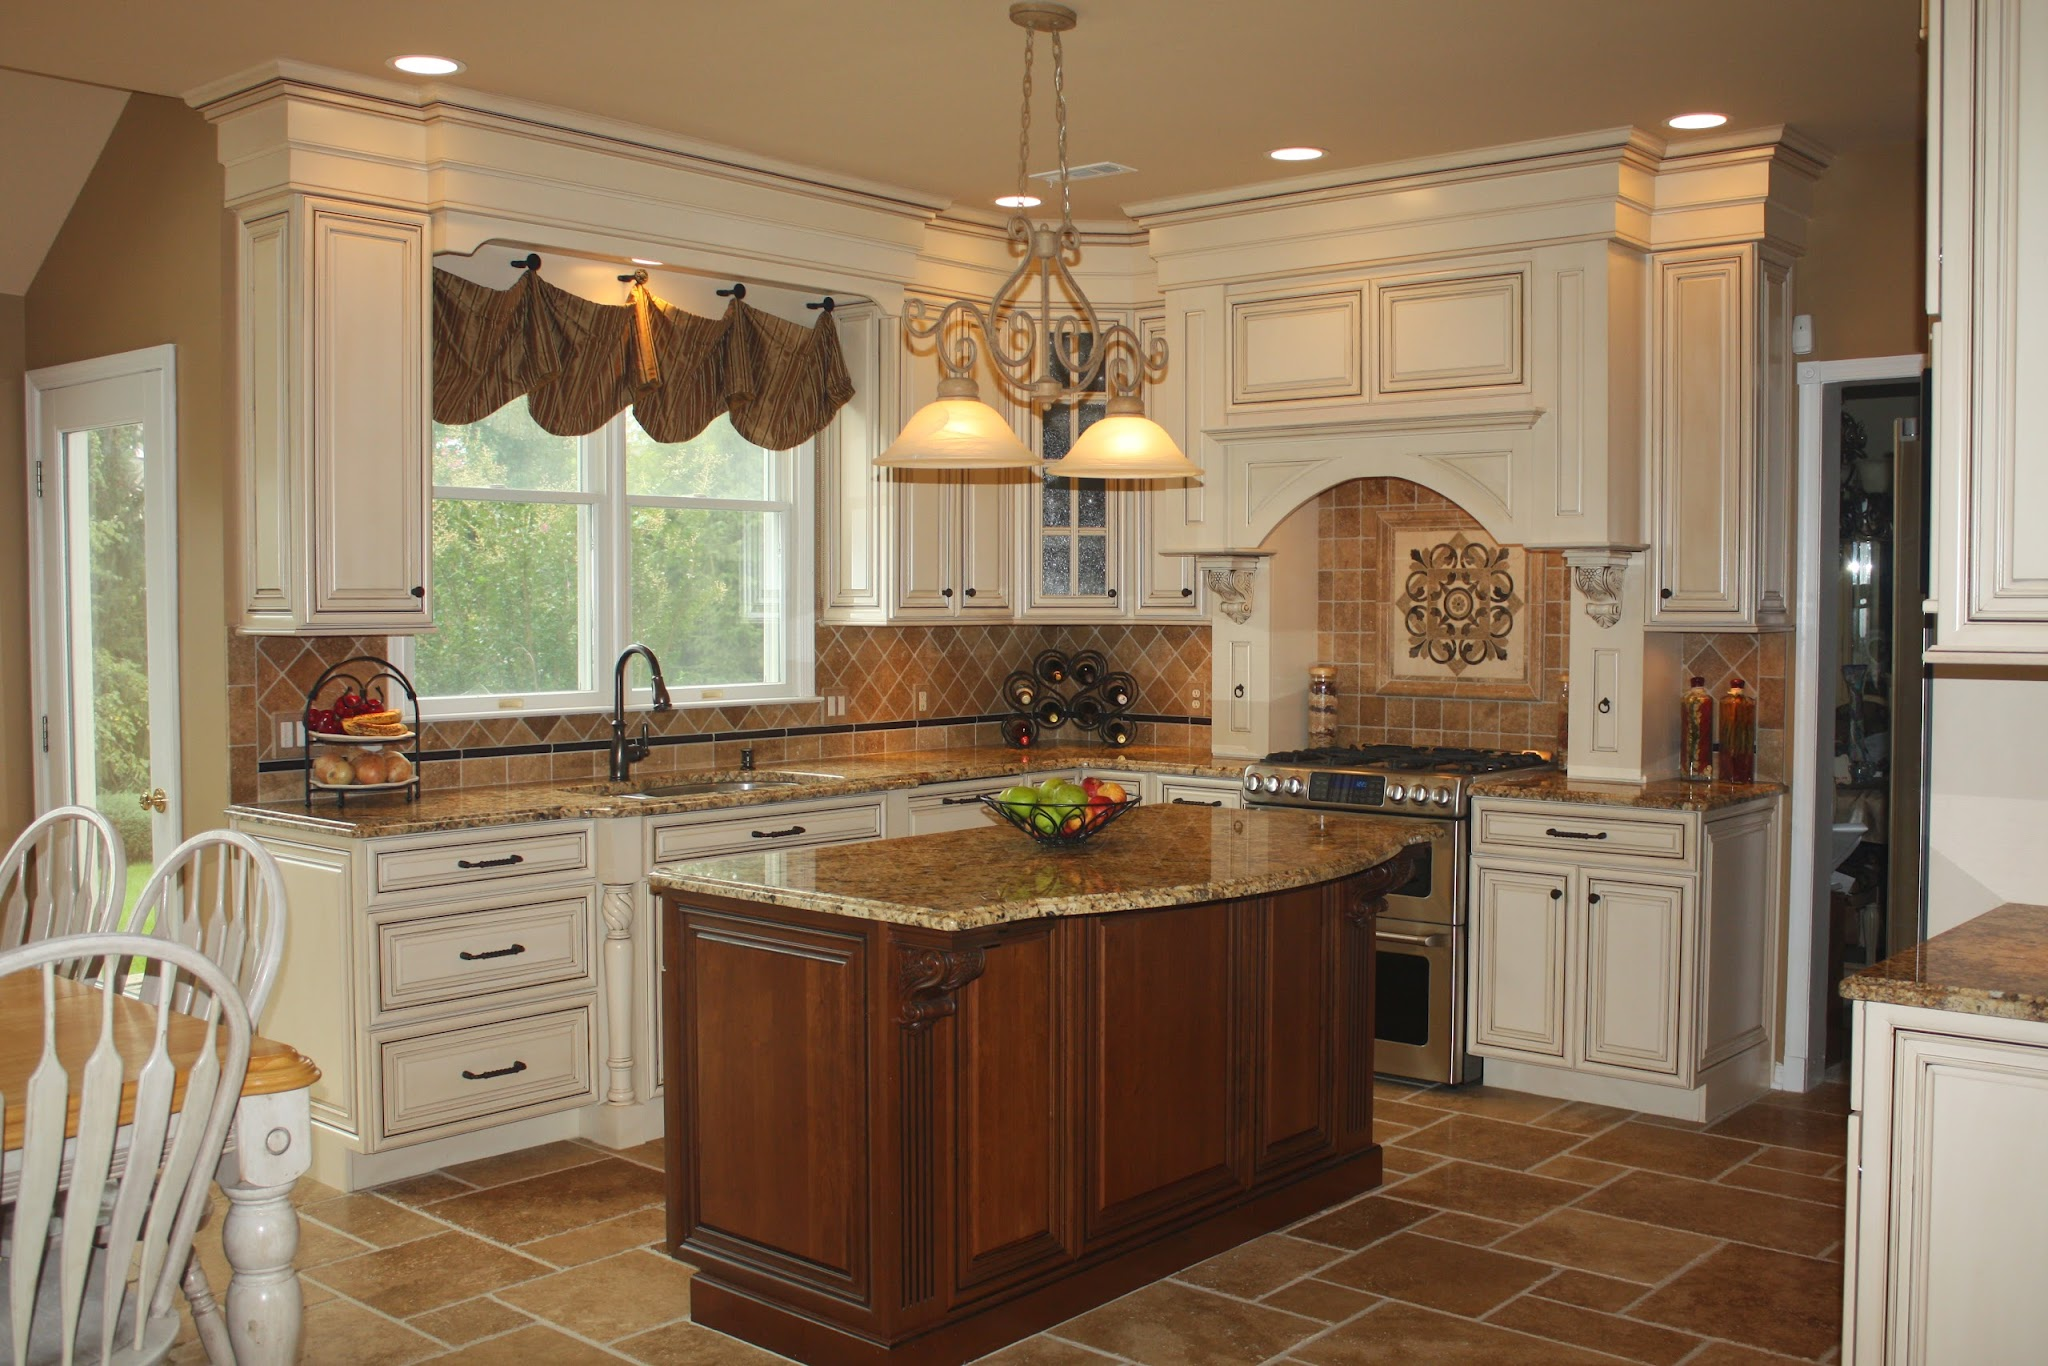 Houzz kitchen dreams house furniture for Kitchen and remodeling